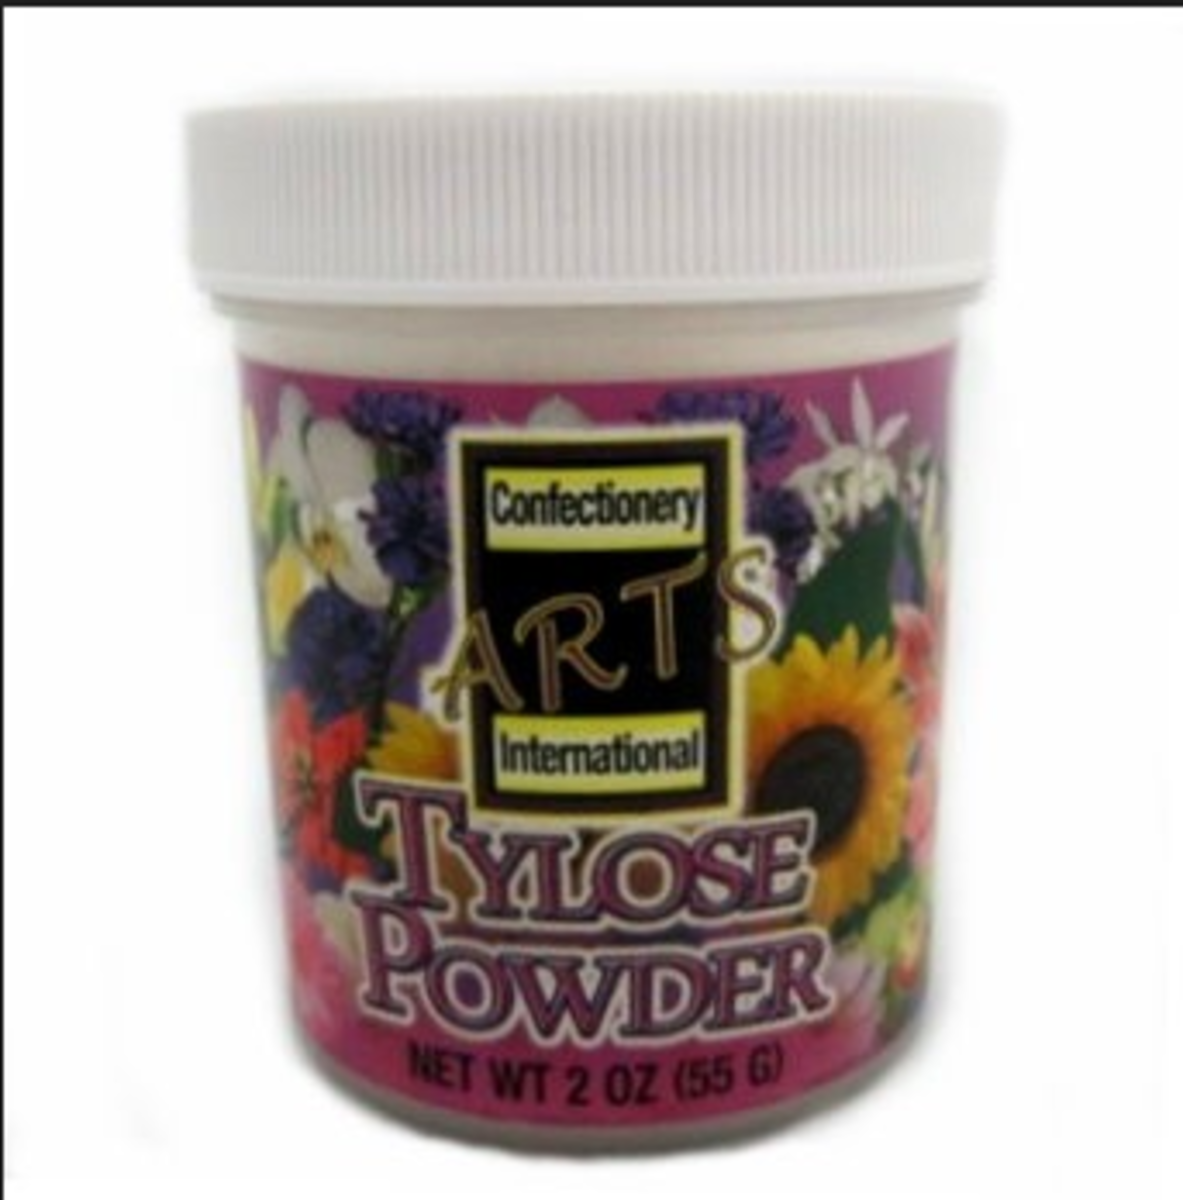 A small 2 ounce tub will last a very long time and make many batches of gumpaste.